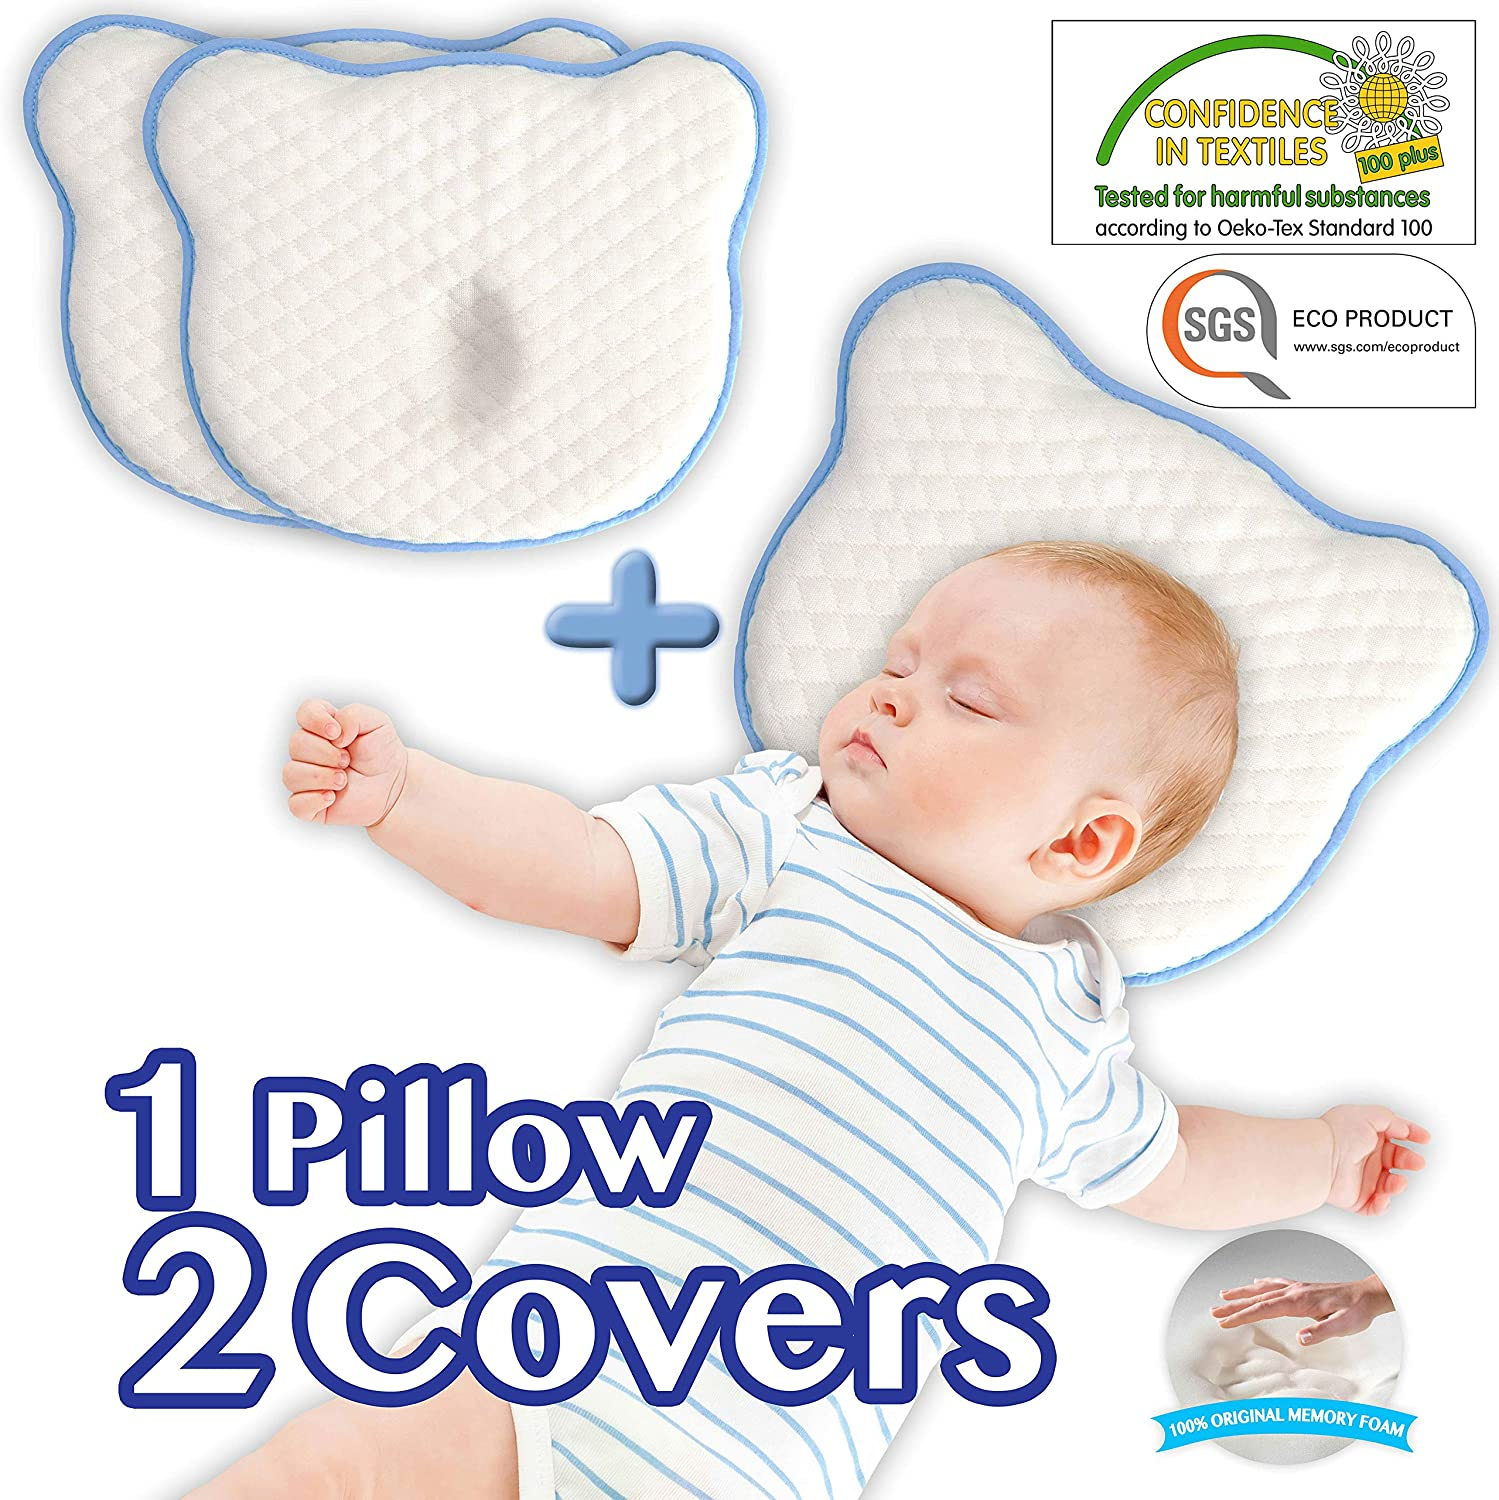 2 Washable 100/% Cotton Covers for Newborn Infant to Prevent Flathead or Plagiocephaly Syndrome Soft Memory Foam Cushion Flat Head Shaping Baby Pillow by ZOSTRATI 0-12months White